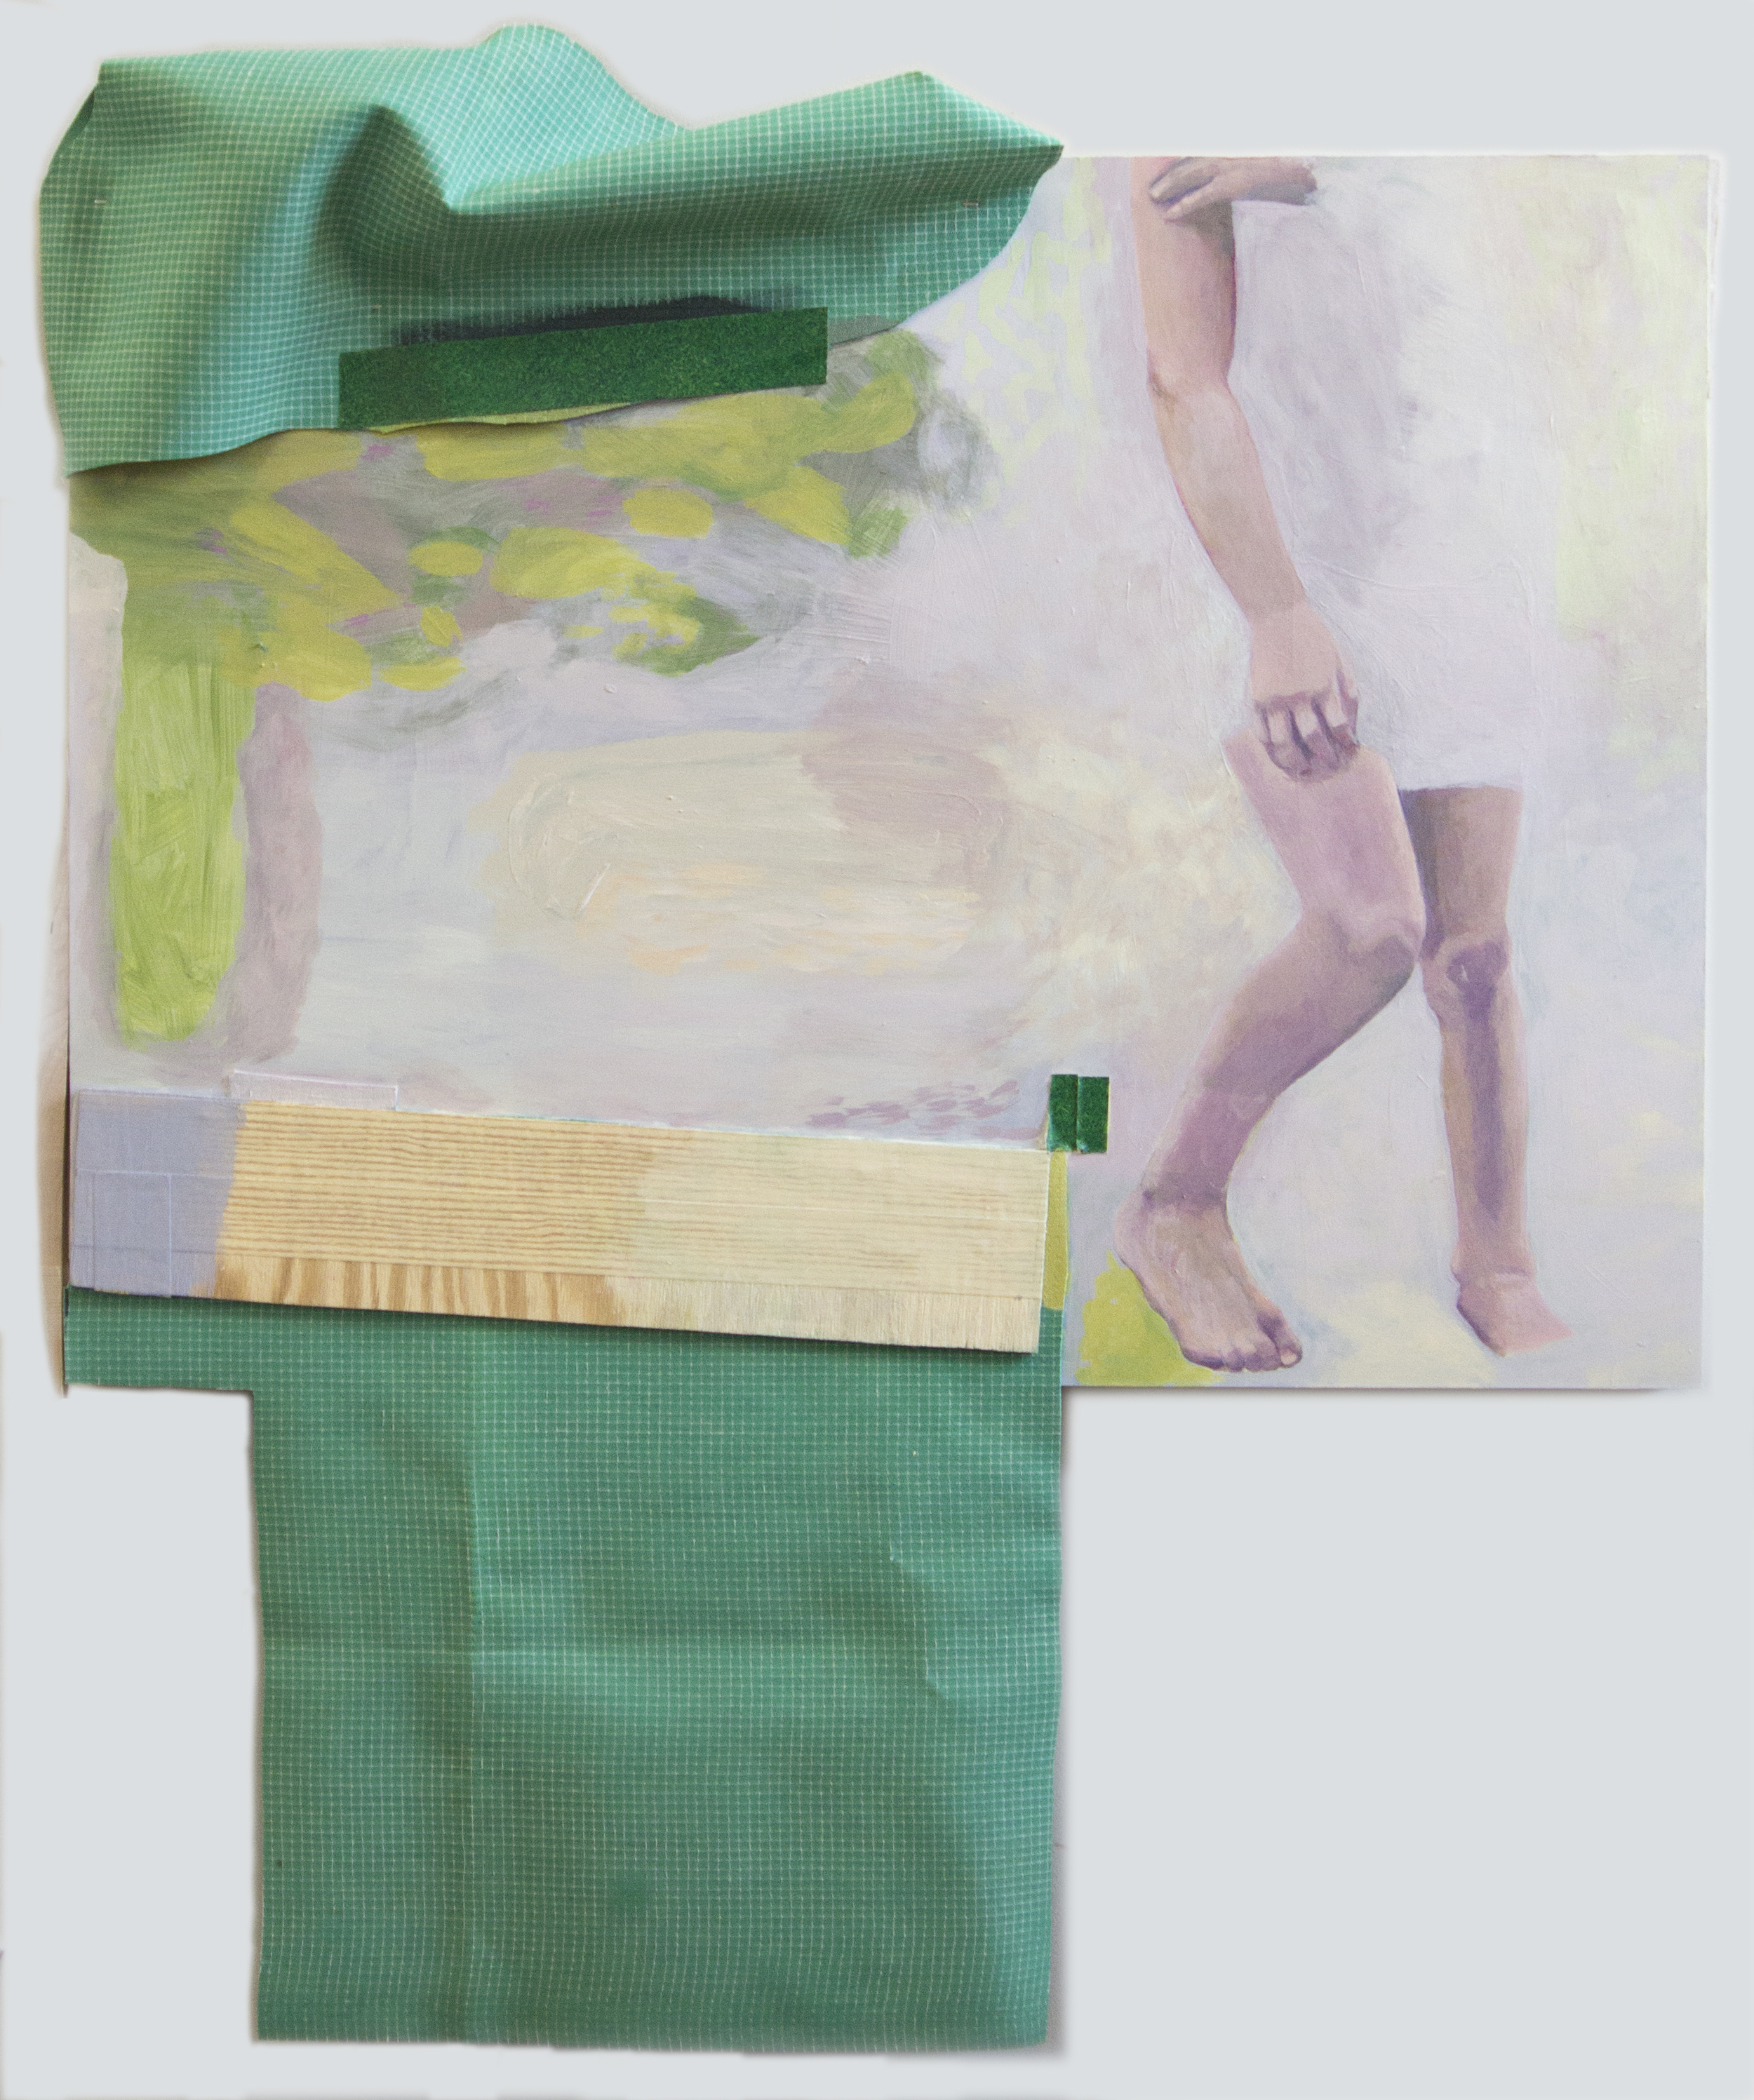 """Girl Acrylic, wood, tape, canvas and rubber matting on cradled clayboard panel 43"""" x 51"""" x 6"""" 2014"""